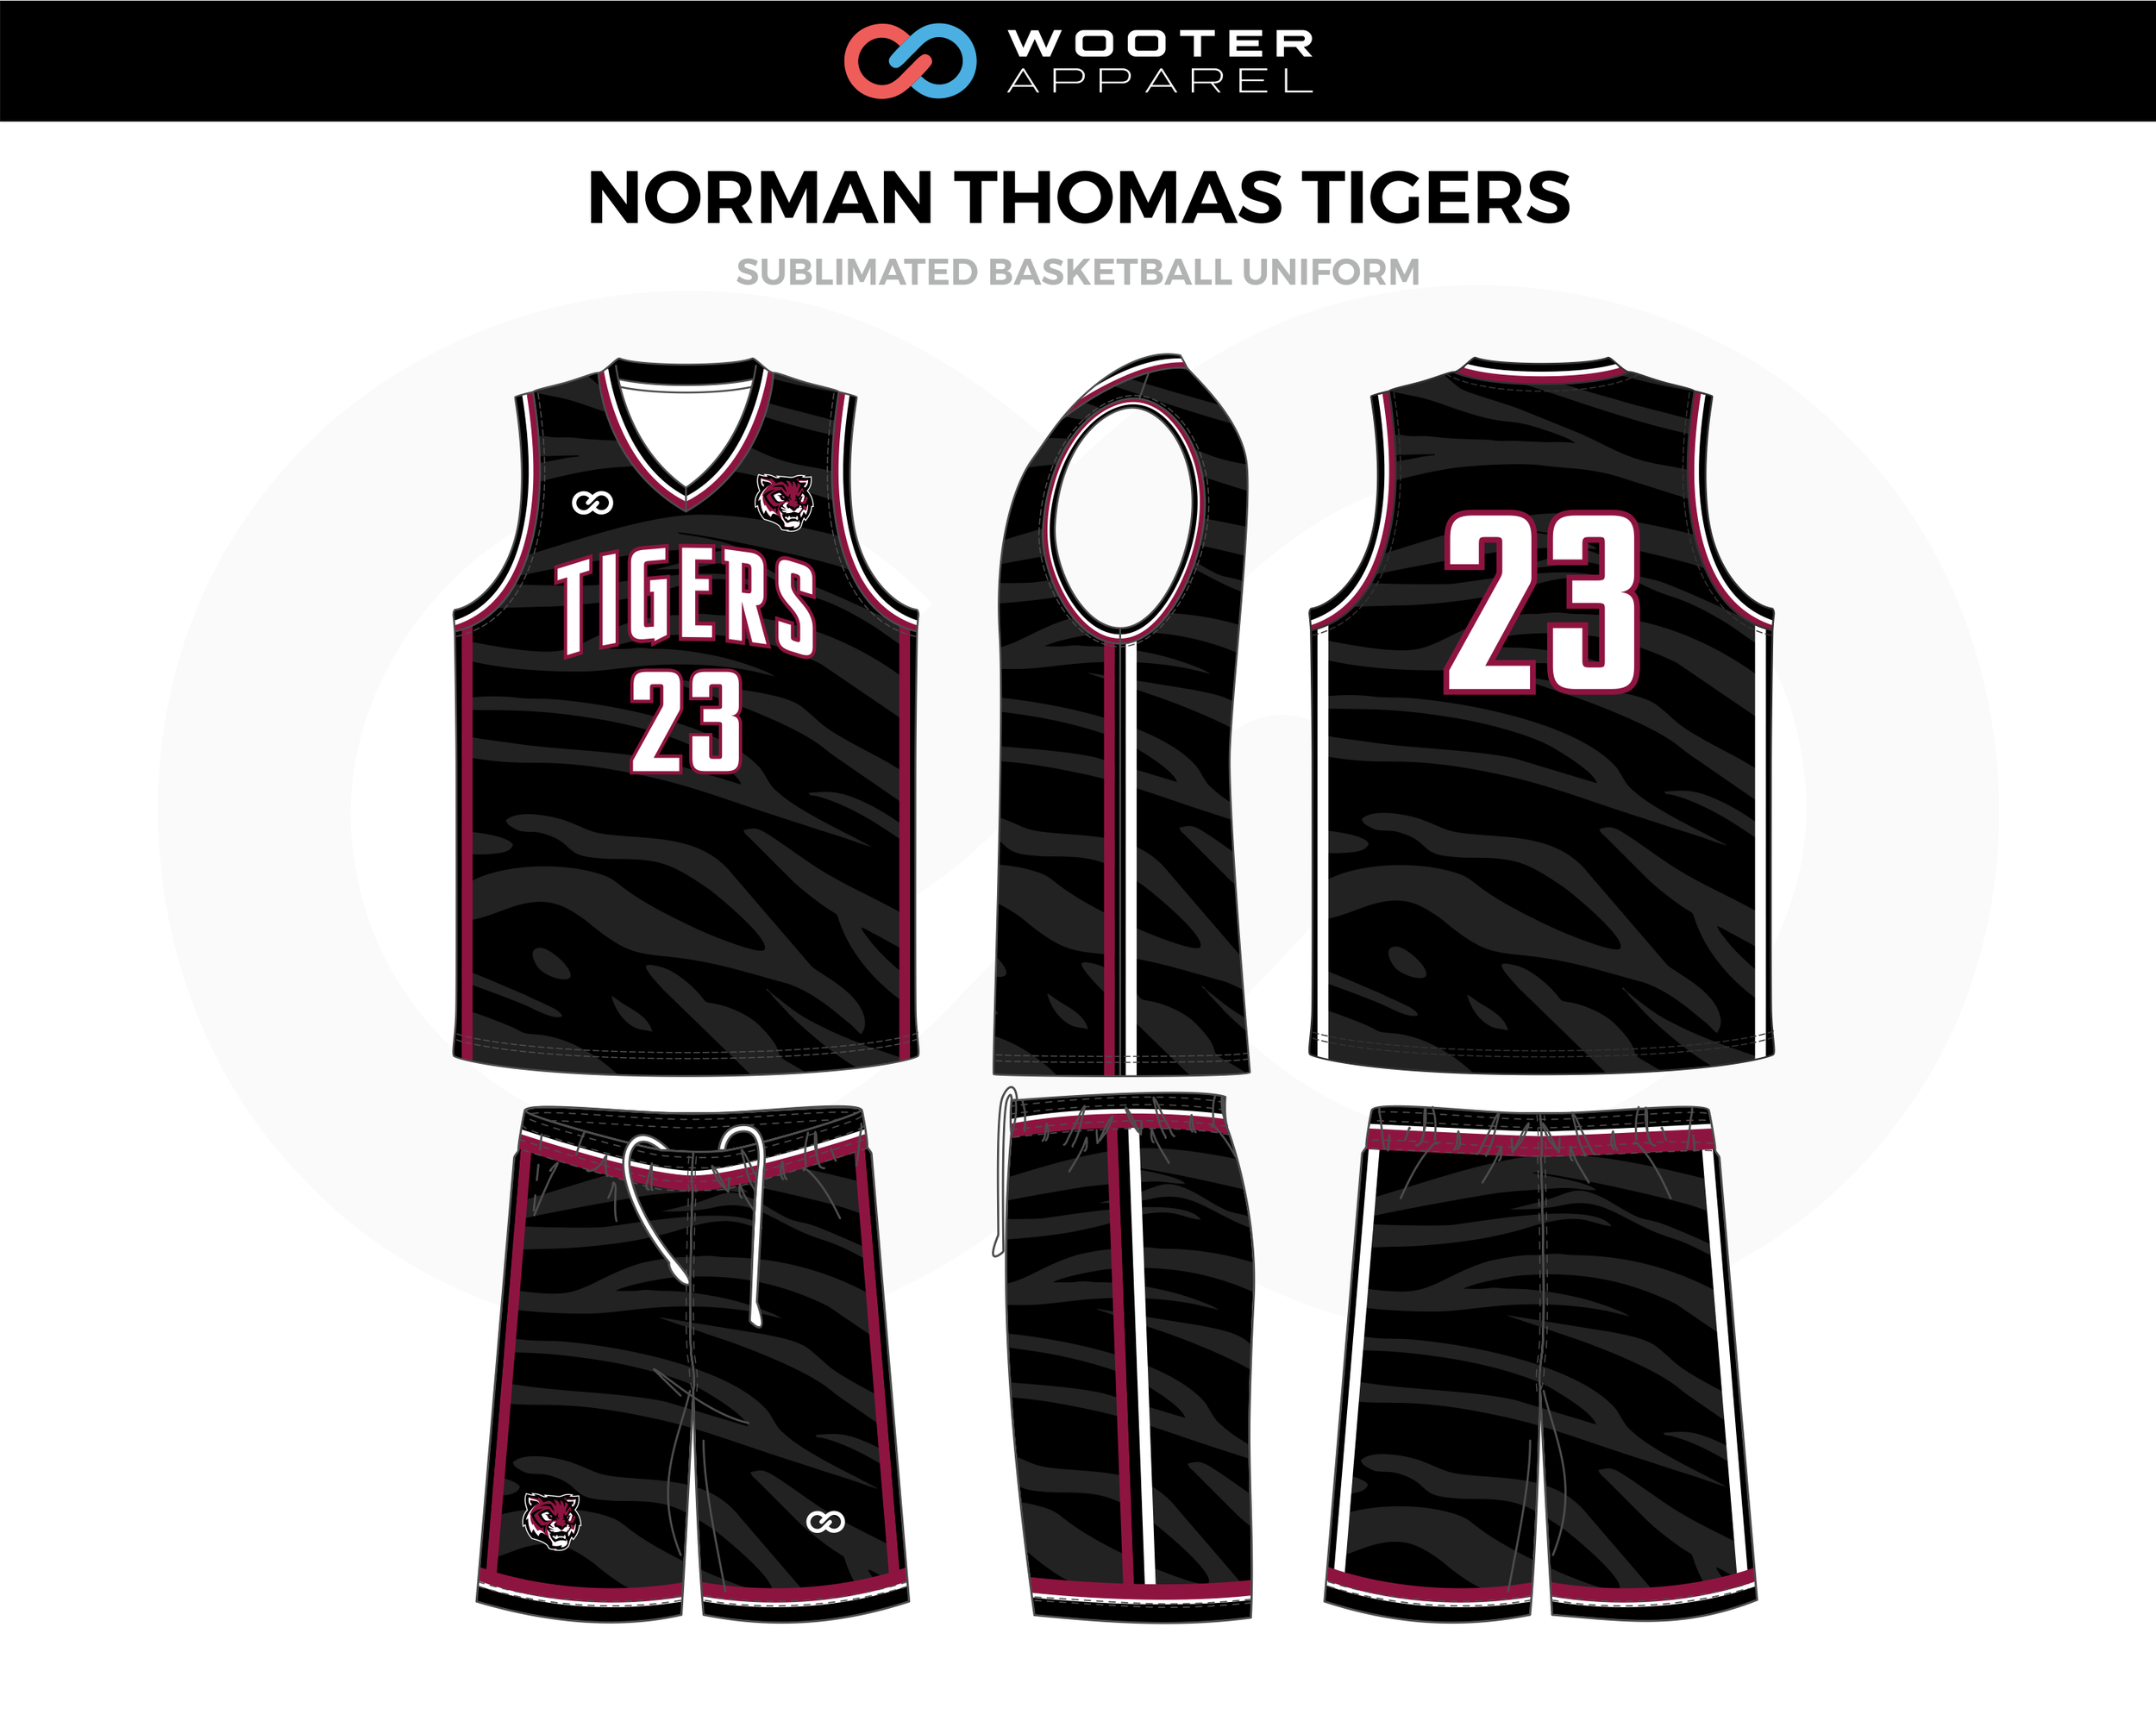 NORMAN THOMAS TIGERS Black White Pink Basketball Uniform, Jersey and Shorts